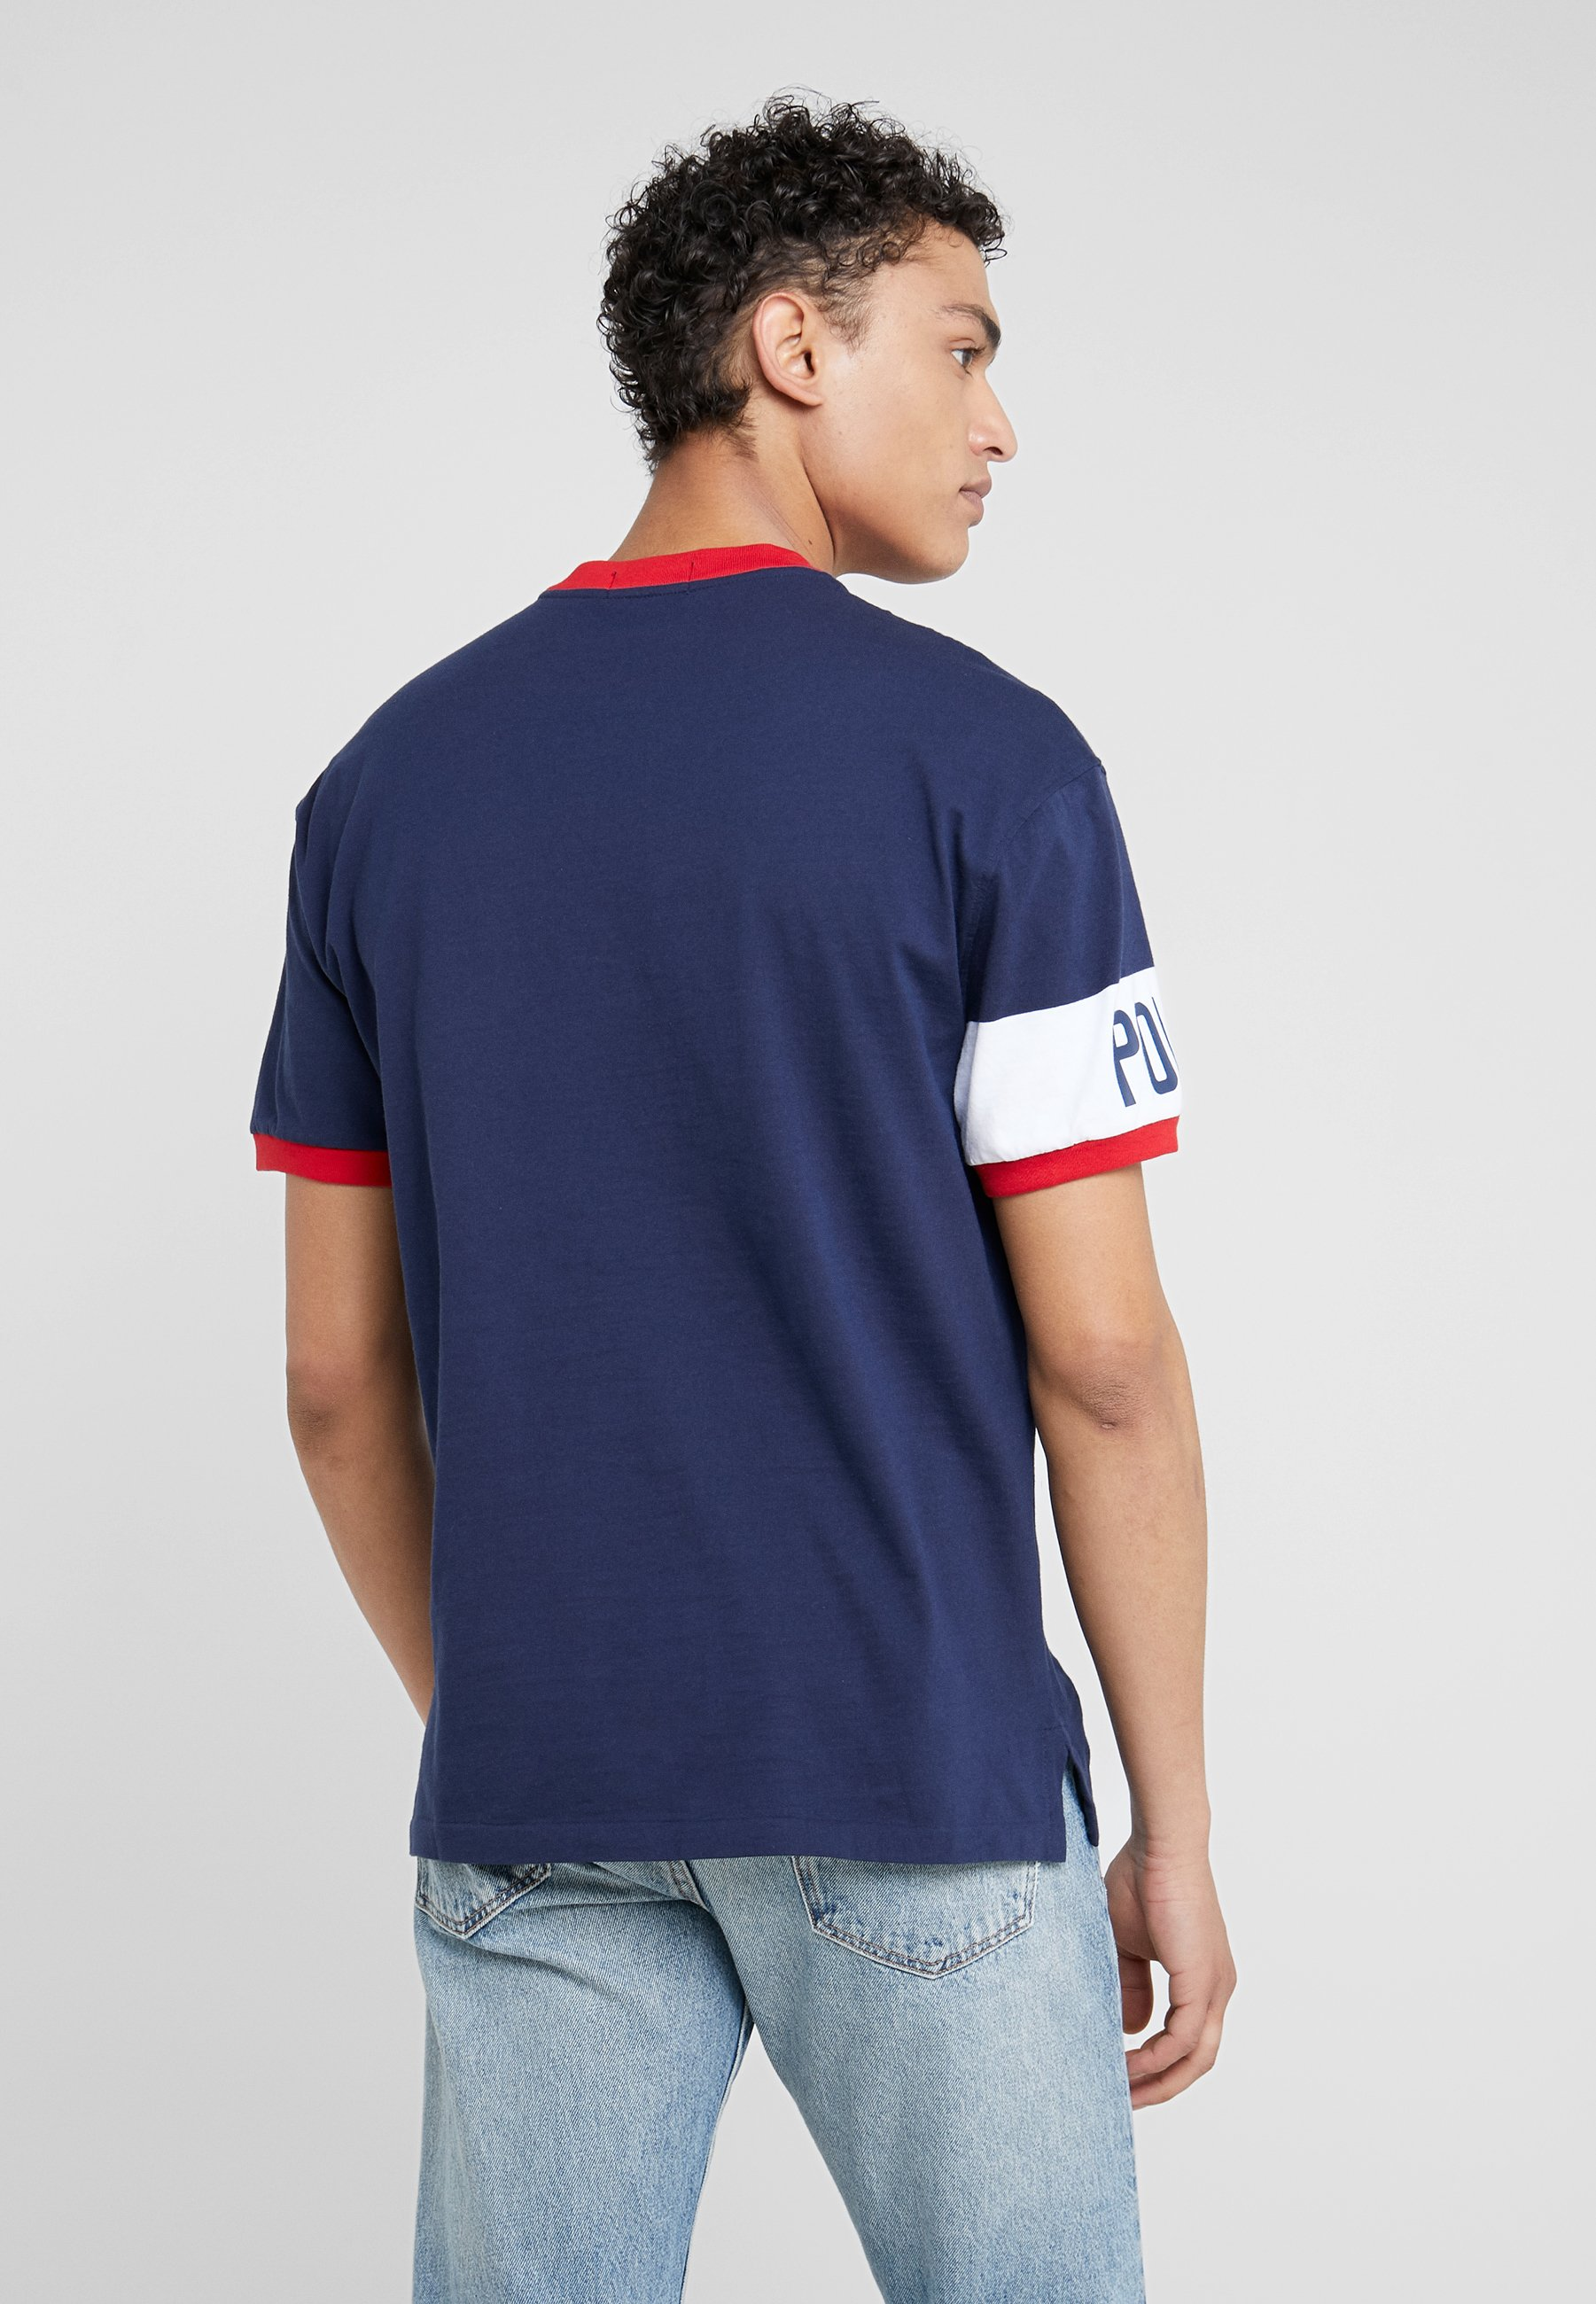 T Navy white Ralph shirt BasiqueFrench Lauren Polo NnOwZ80XPk